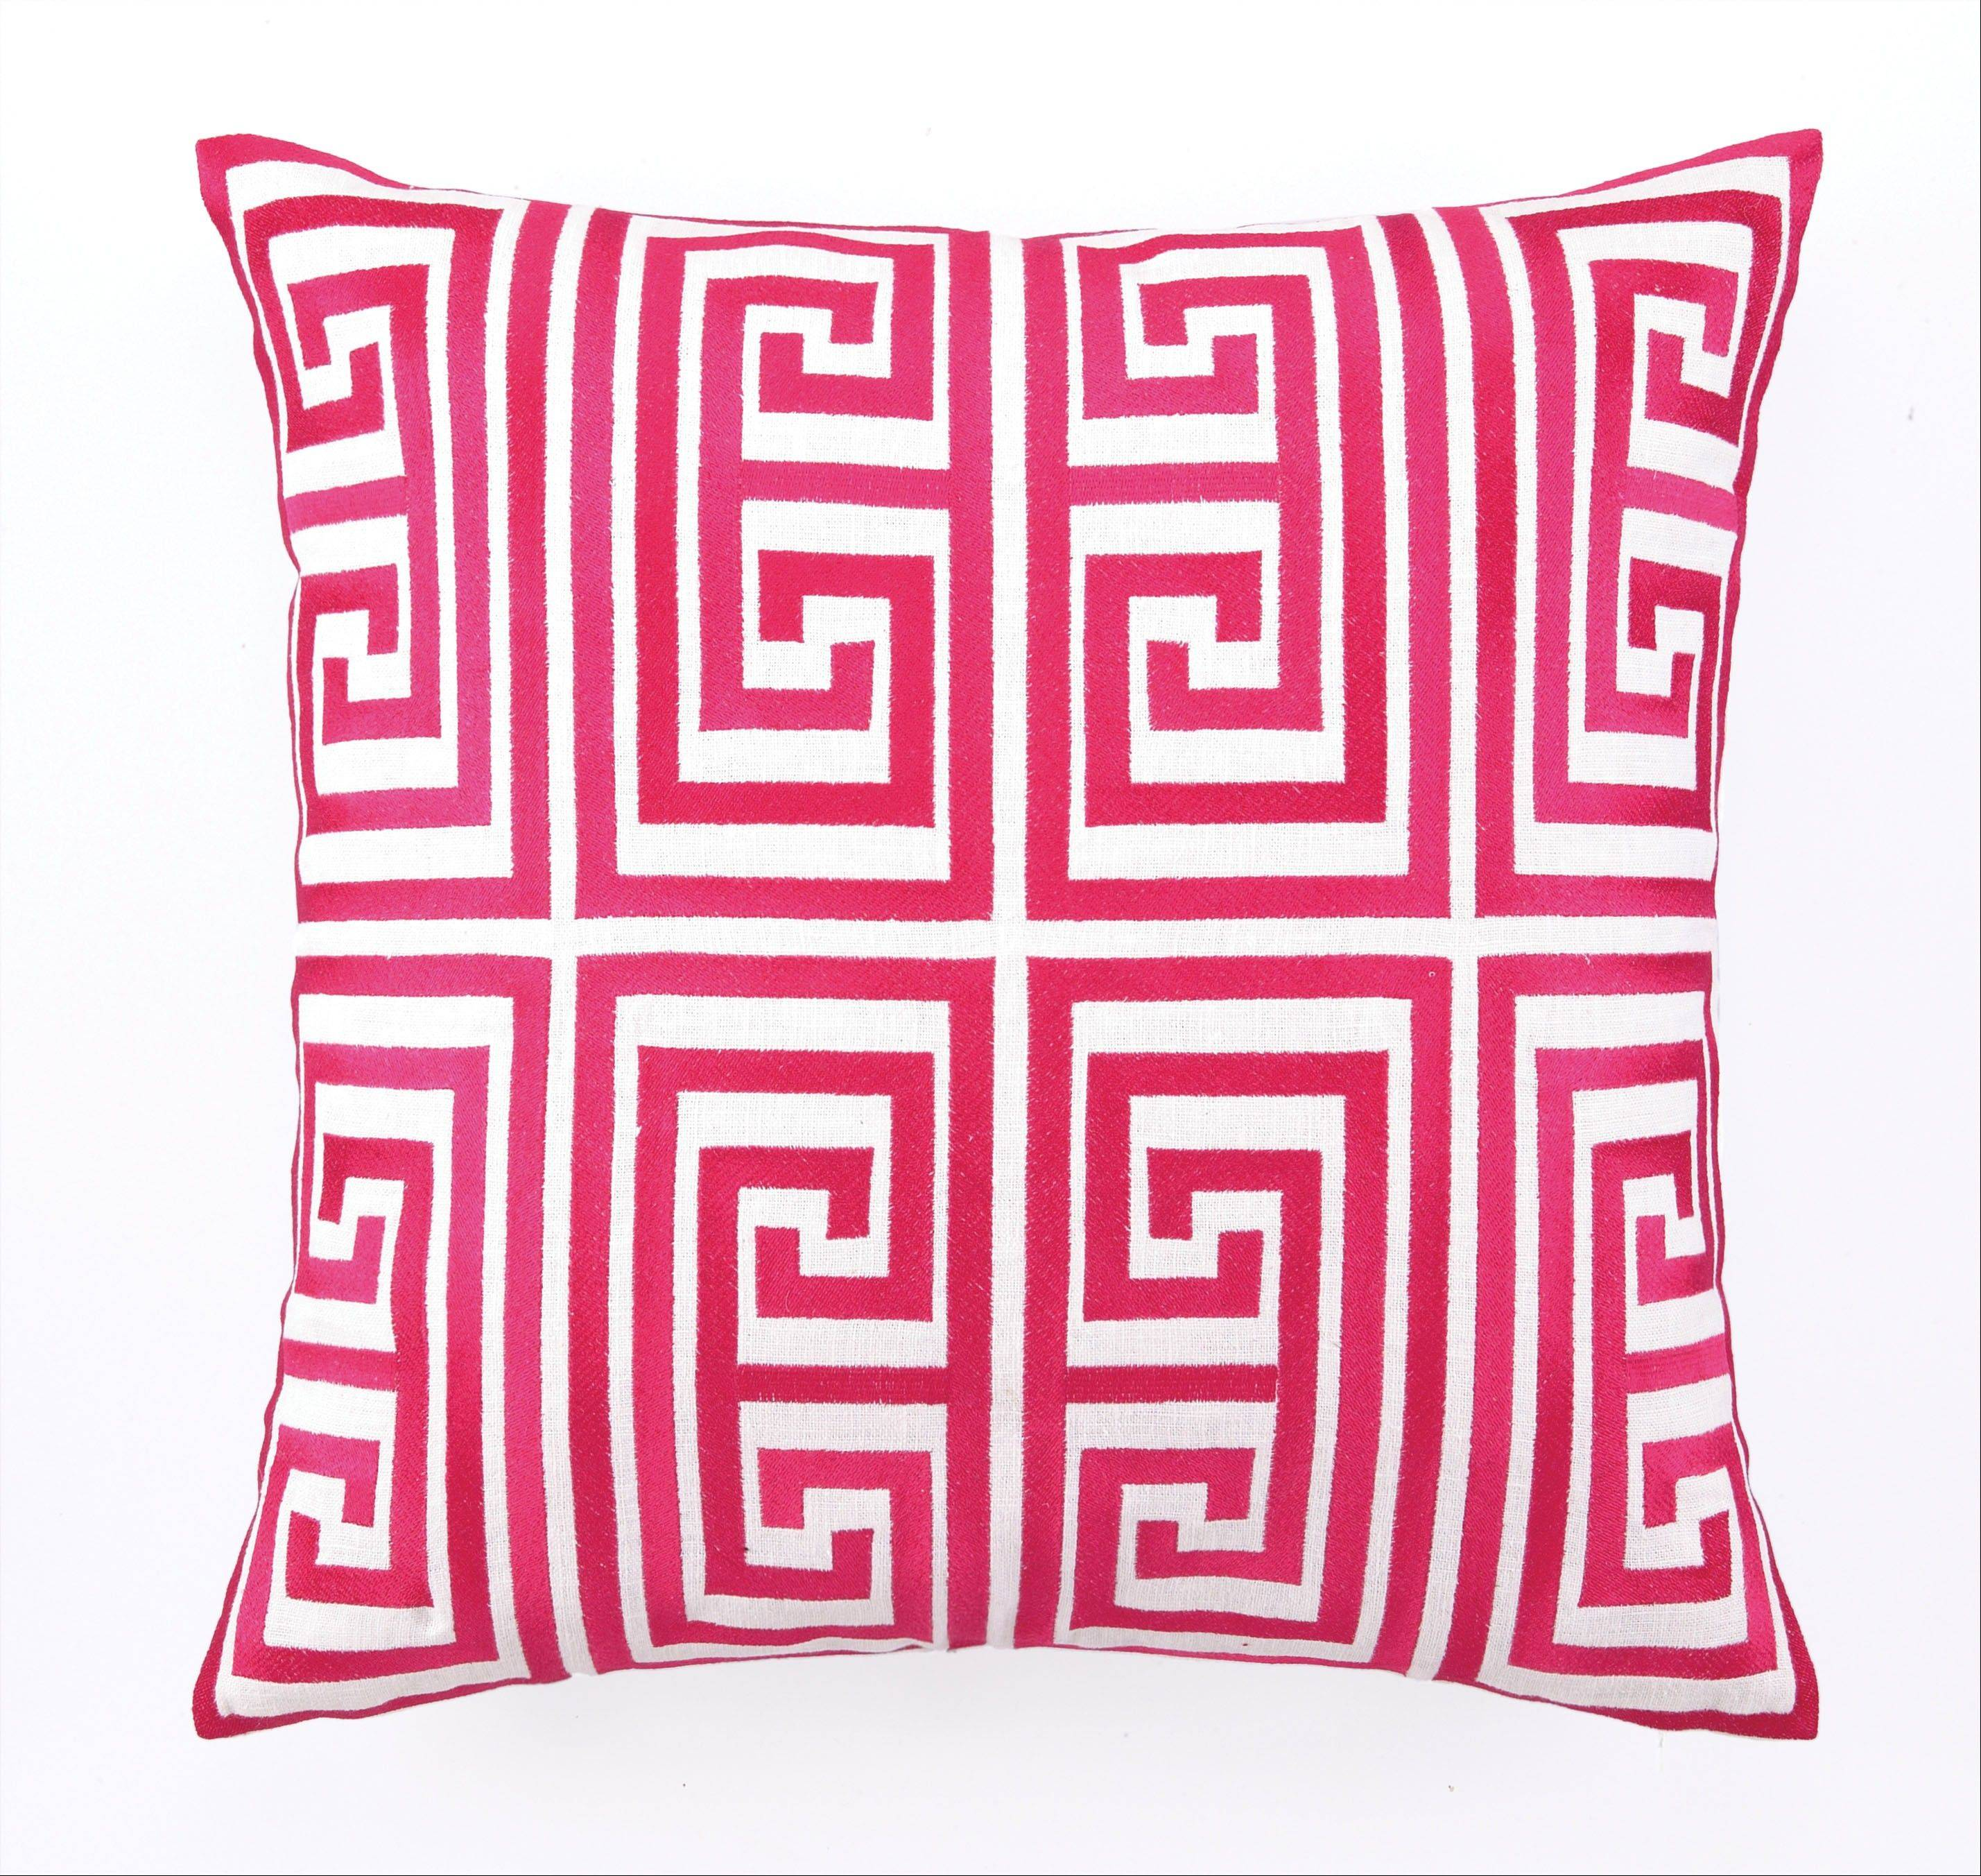 The Greek key pattern has moved out of its safety zone of fabrics and into the world of furniture, such as this Trina Turk pillow.